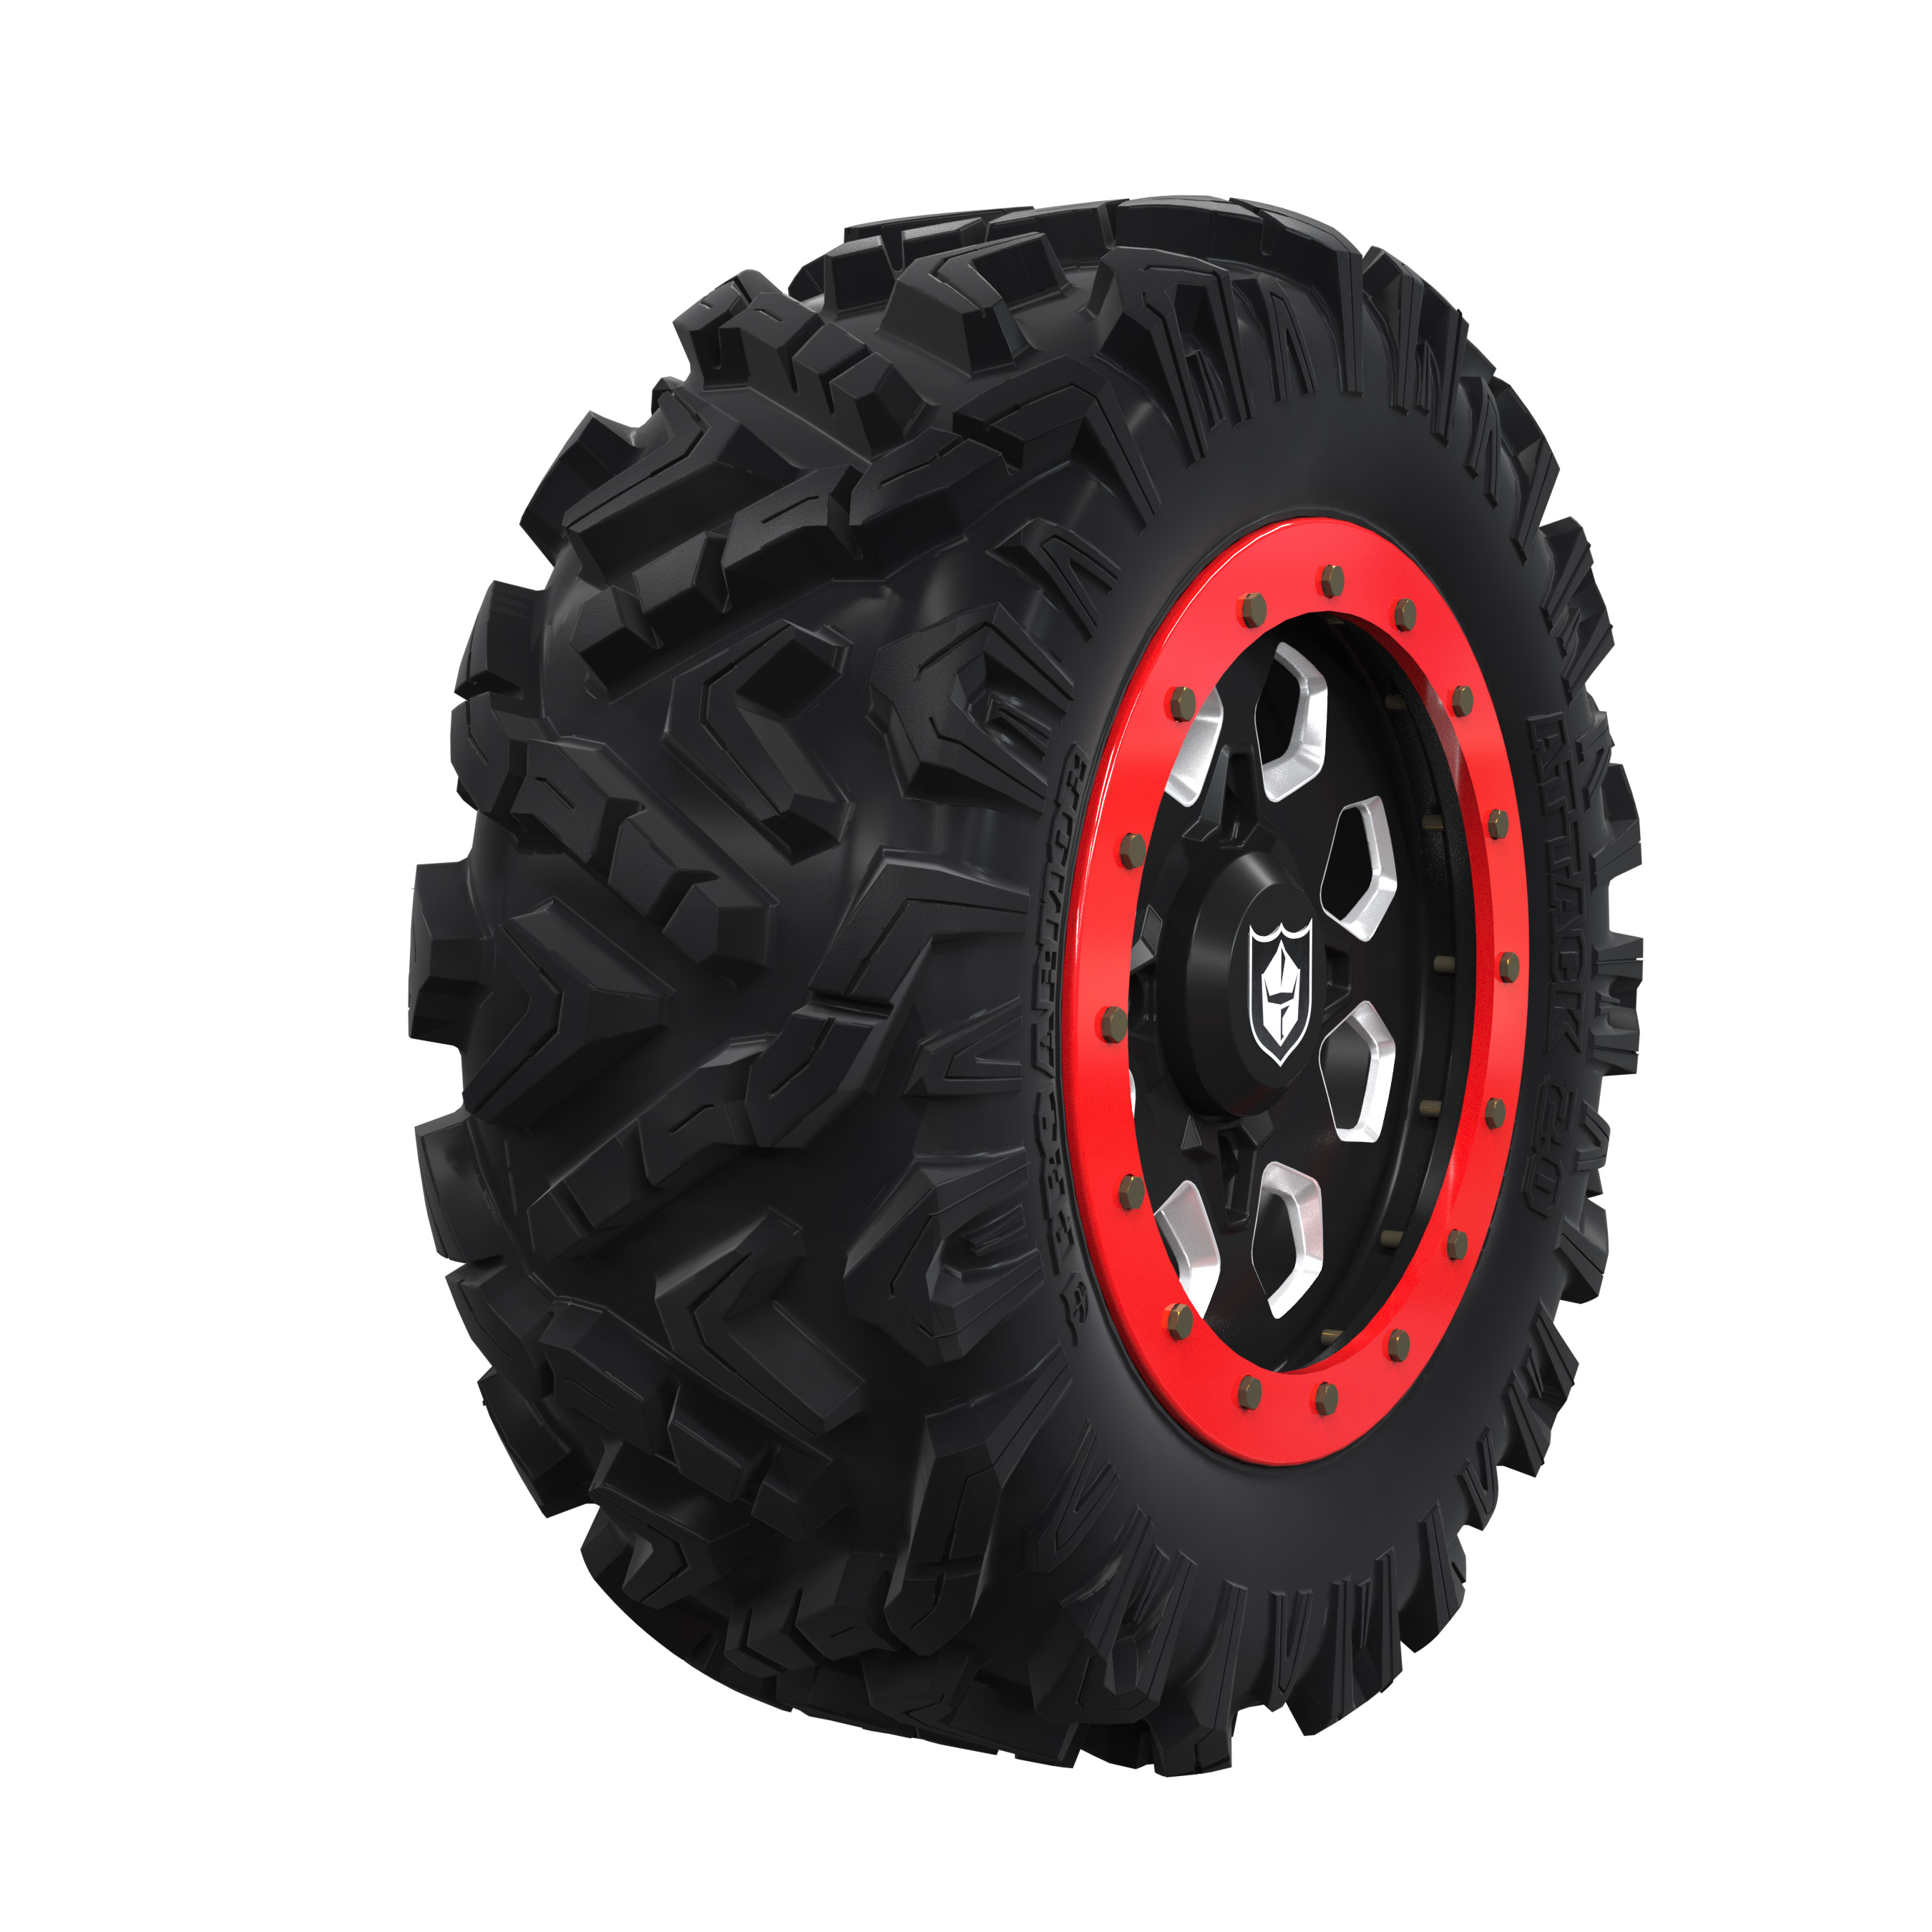 "Pro Armor® Wheel & Tires Set - Attack 2.0, HEXLR - Accent, 28""R15"